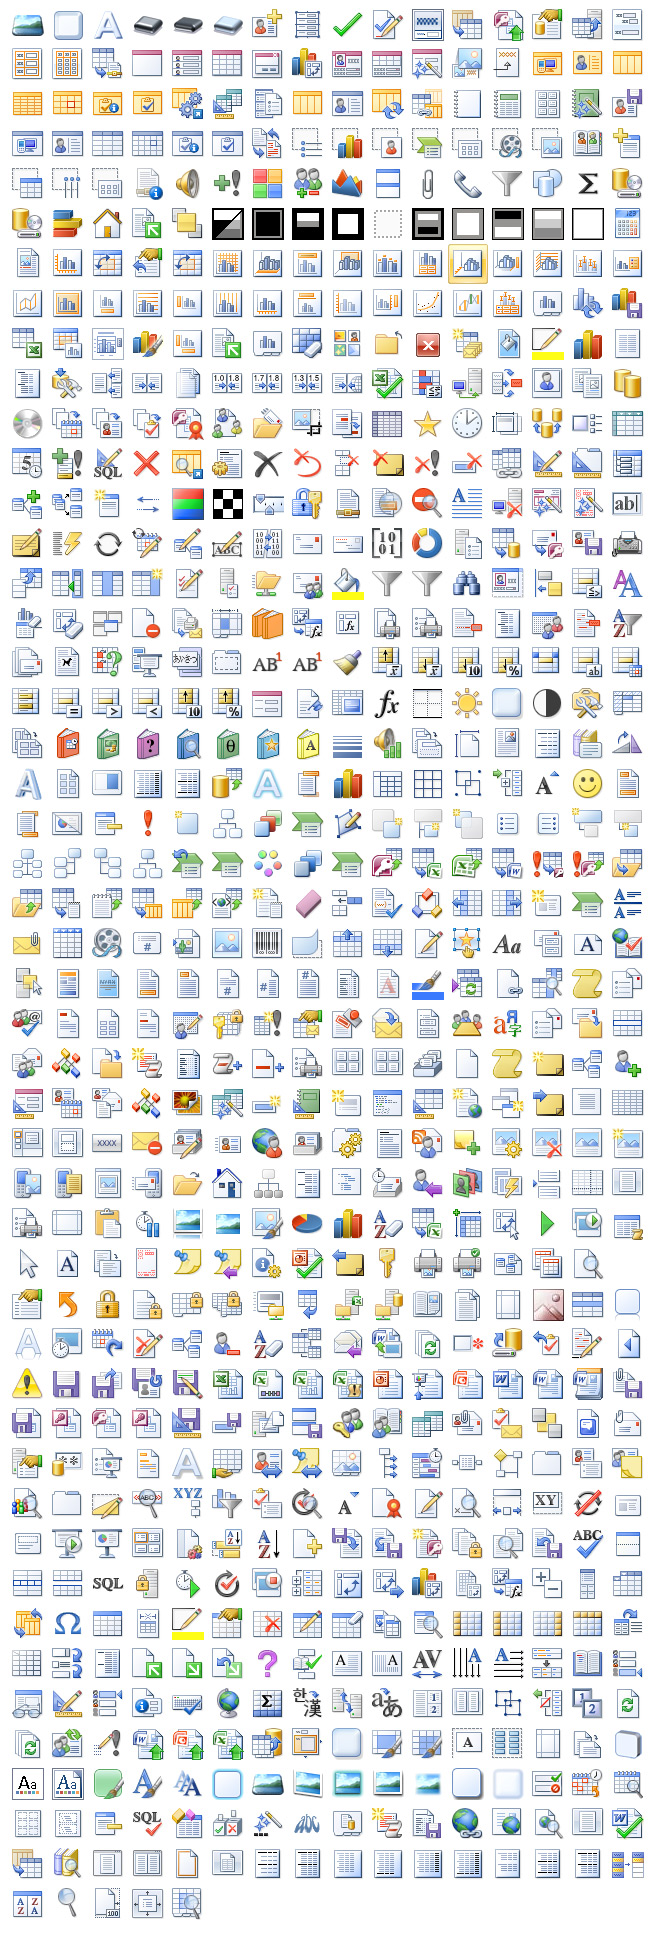 Microsoft Office 2007 Icons Missing